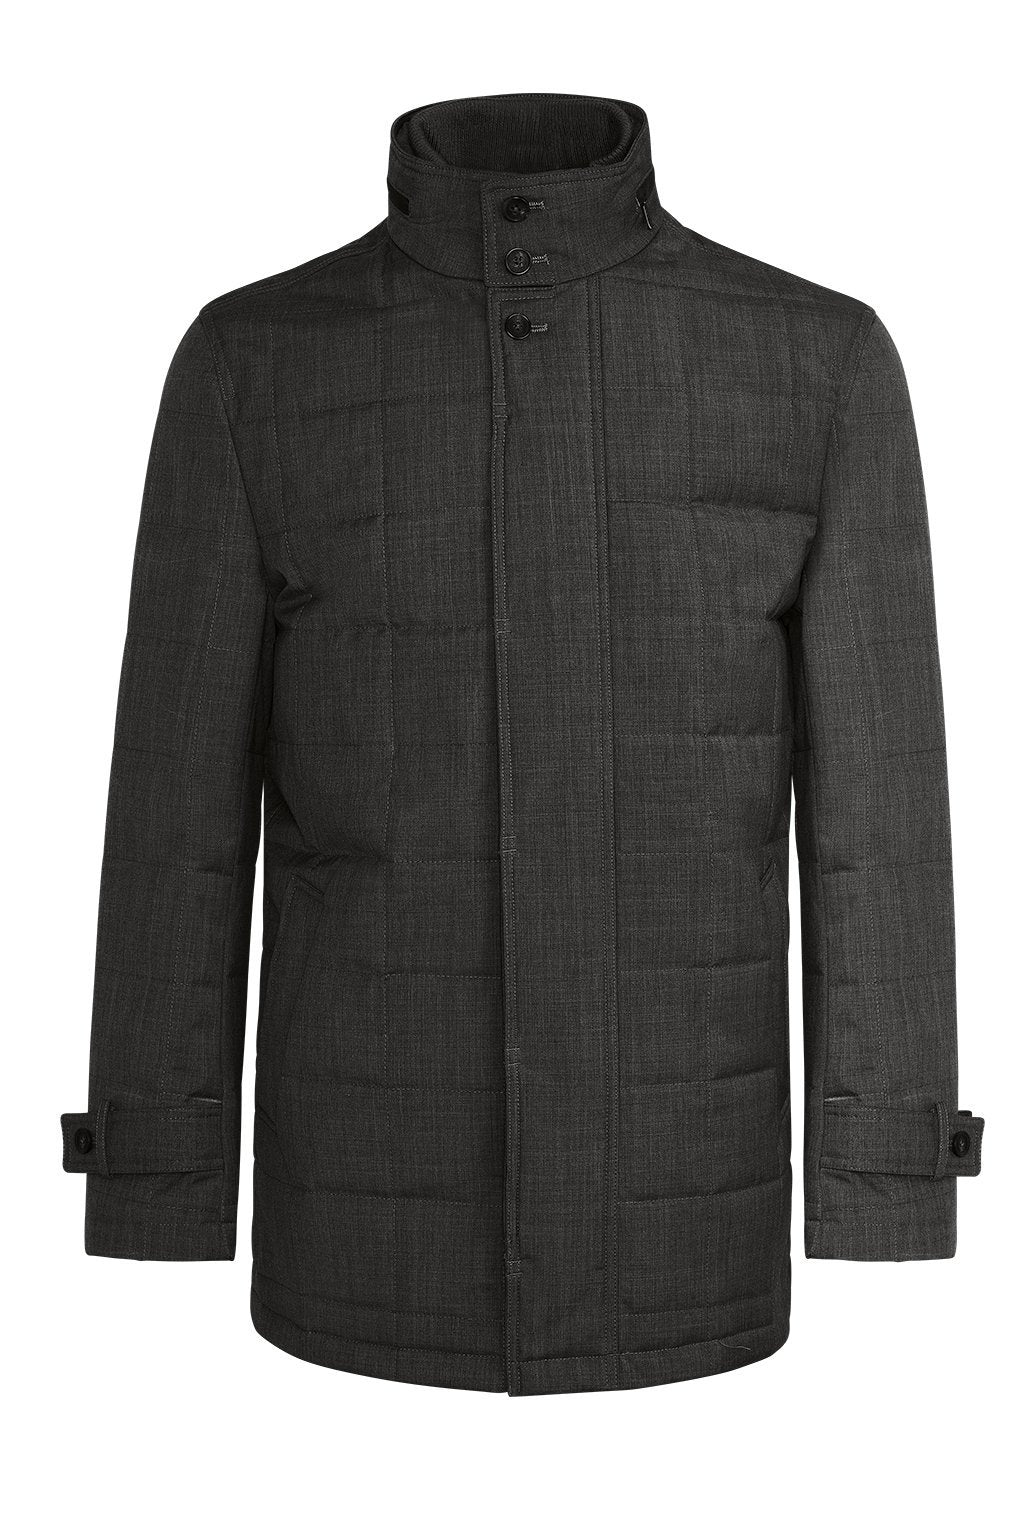 Charcoal Belmont Technical Wool Coat - Cardinal of Canada-US